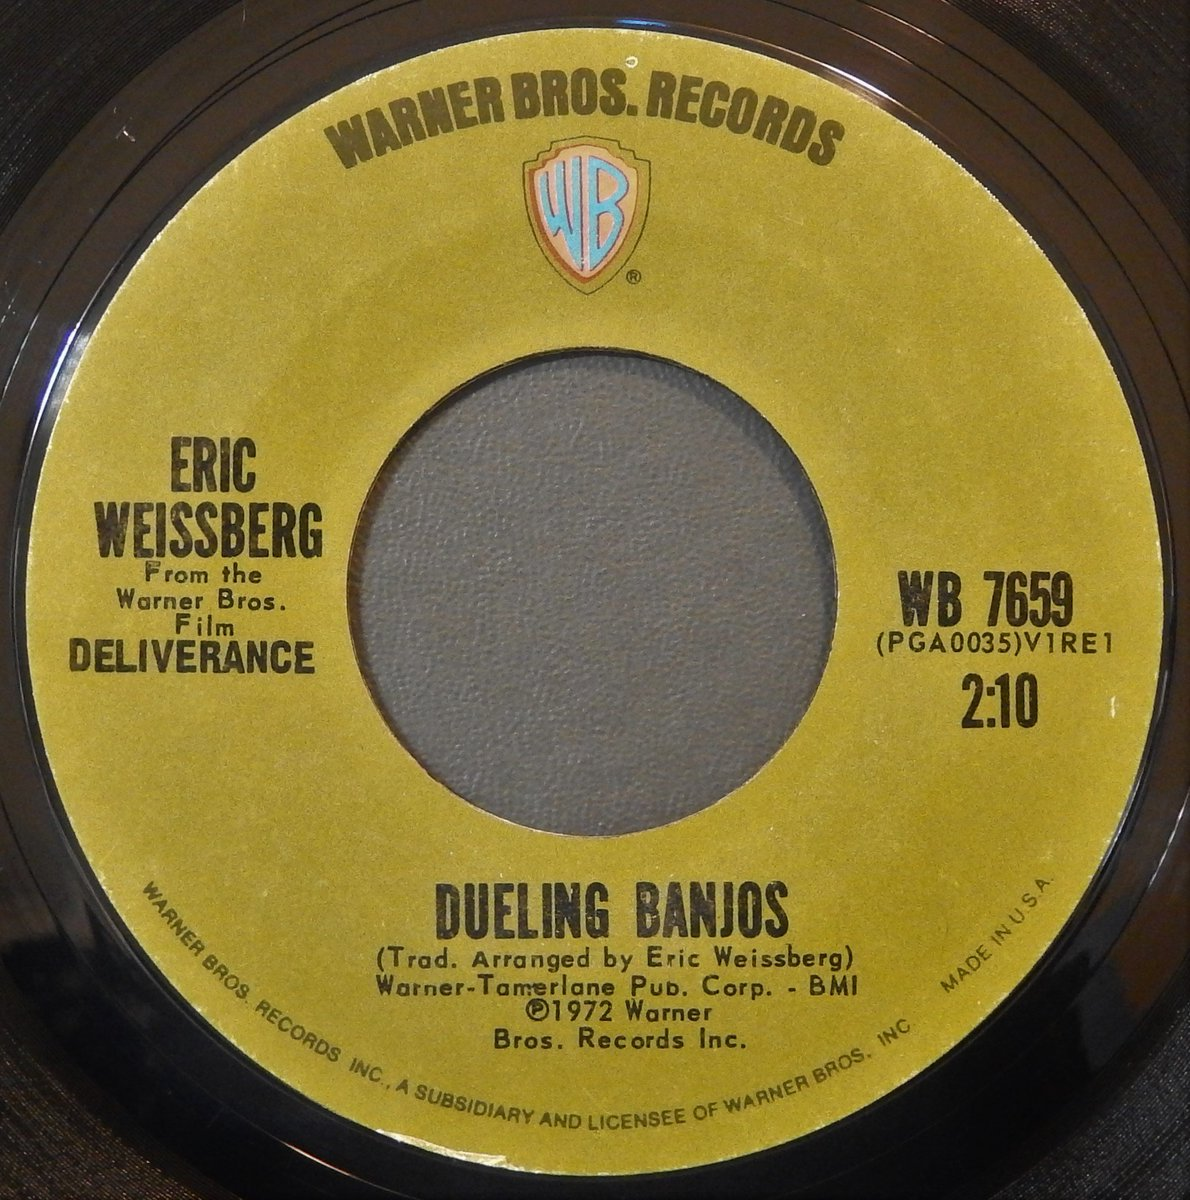 Currently Spinning:  Eric Weissberg &quot;Dueling Banjos&quot; on Warner Bros. Records. <br>http://pic.twitter.com/pJVcY4SAv1